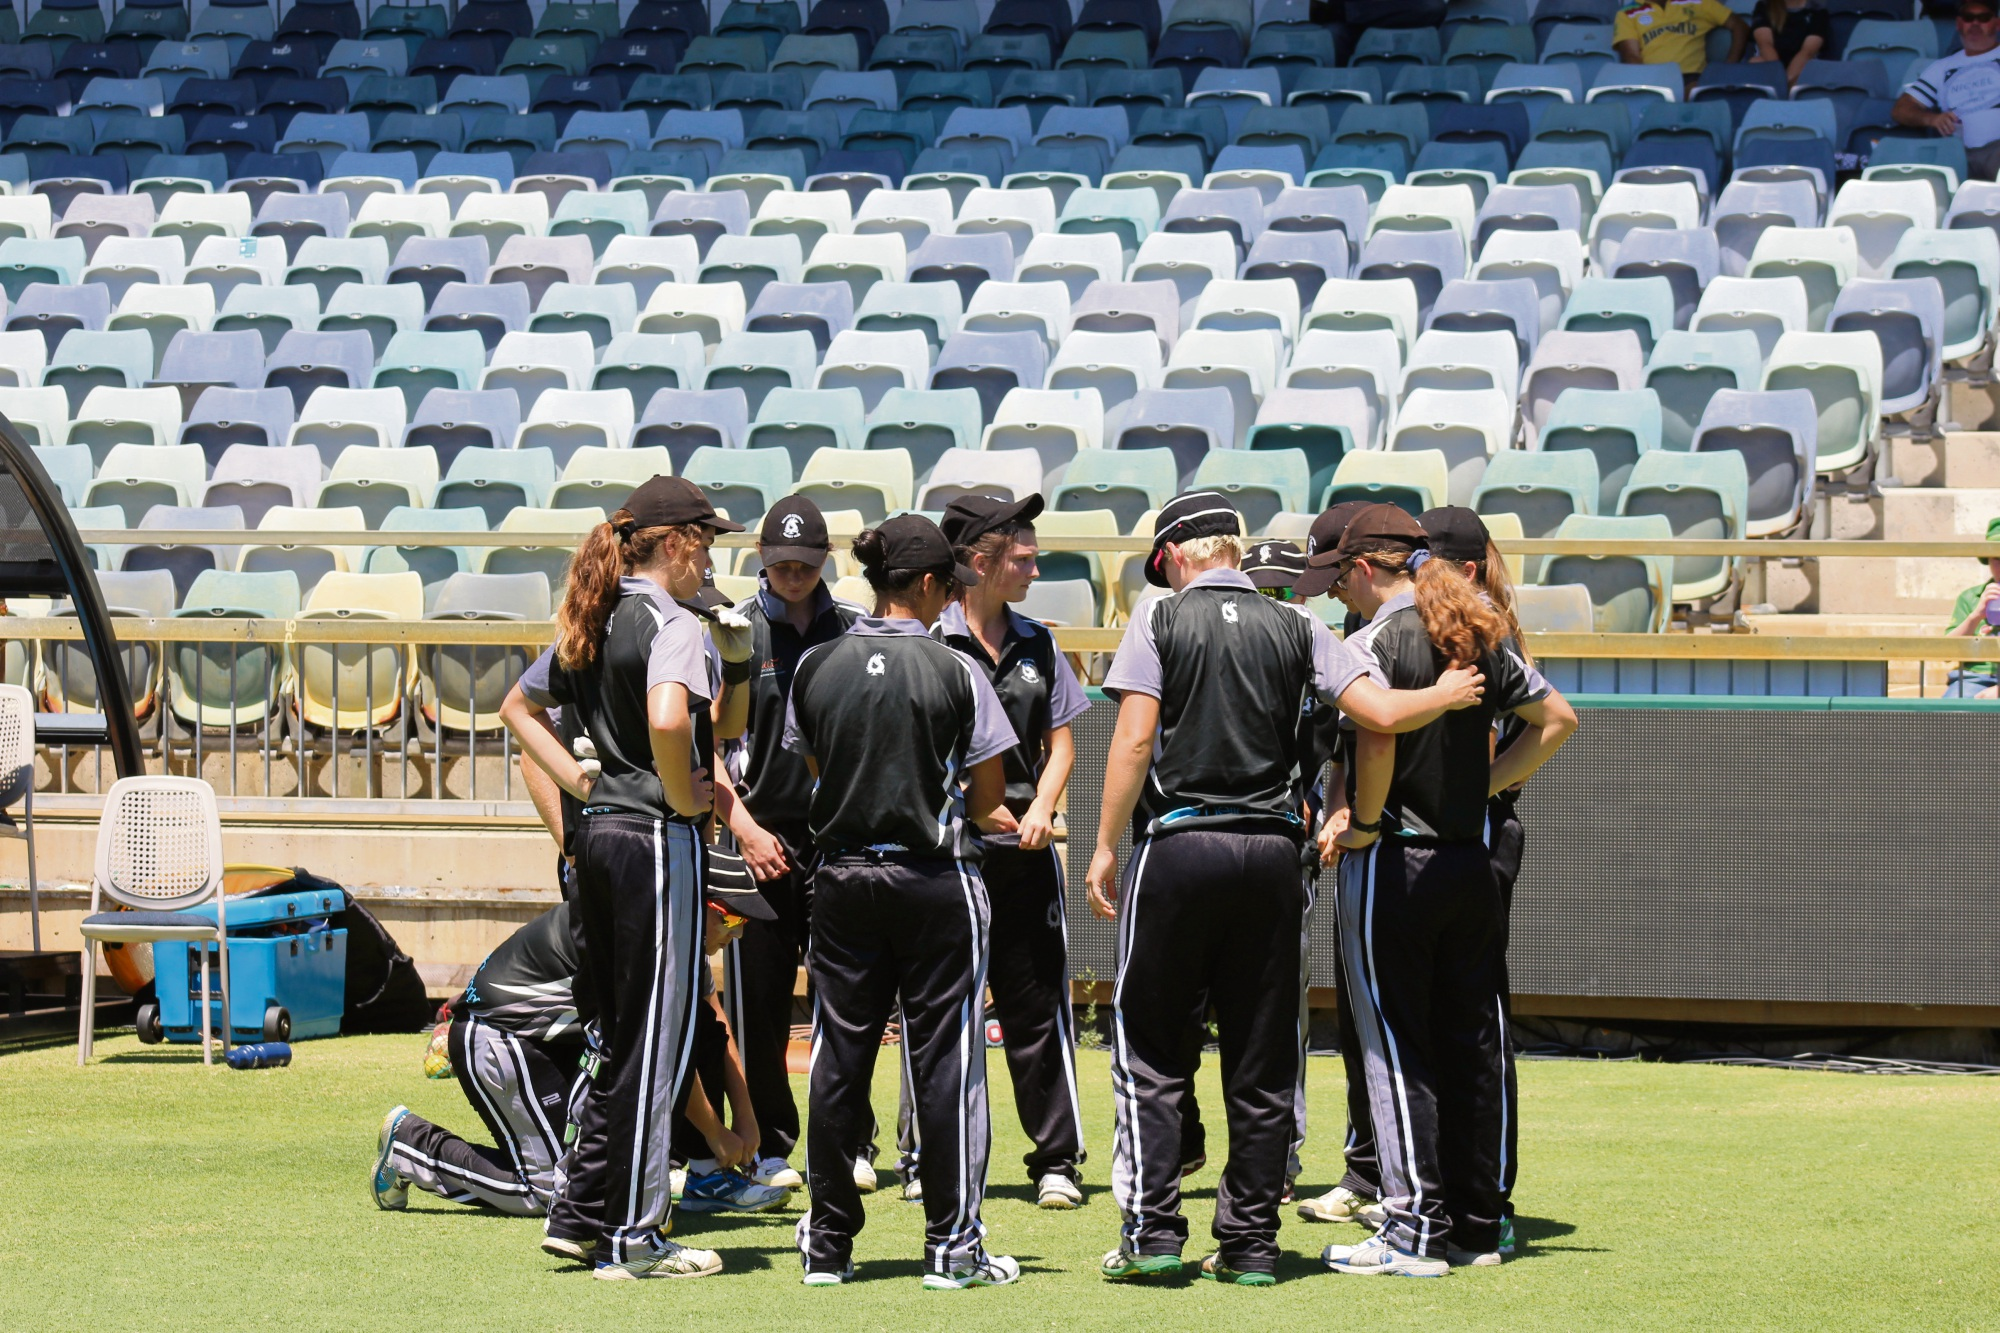 Cricket: reigning champs Midland-Guildford to defend crown in grand final